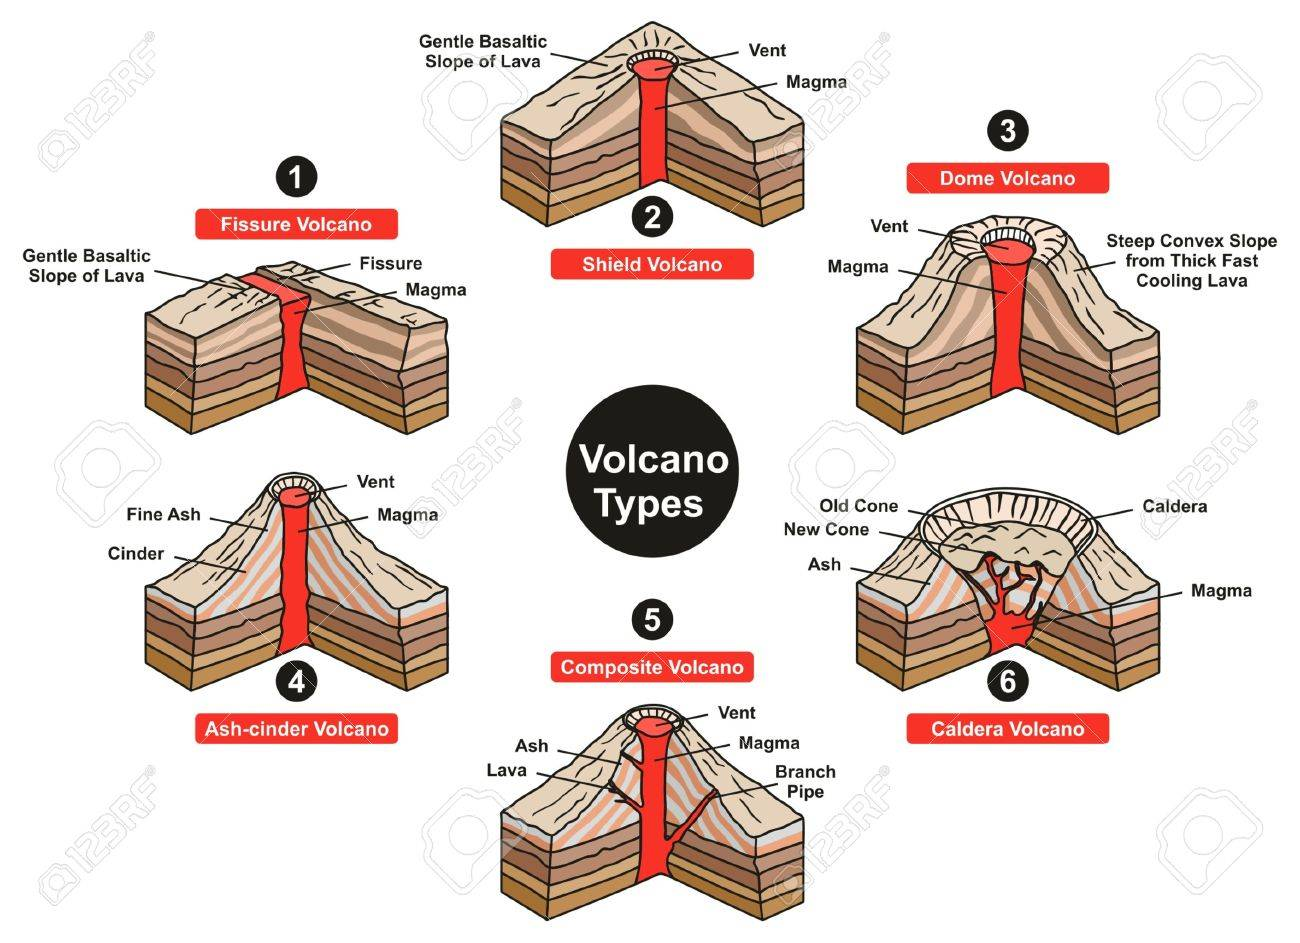 Volcano Types Infographic Diagram including fissure sheild dome ash cinder composite and caldera with all parts vent slope magma lava for geology science and natural disaster education - 80631975